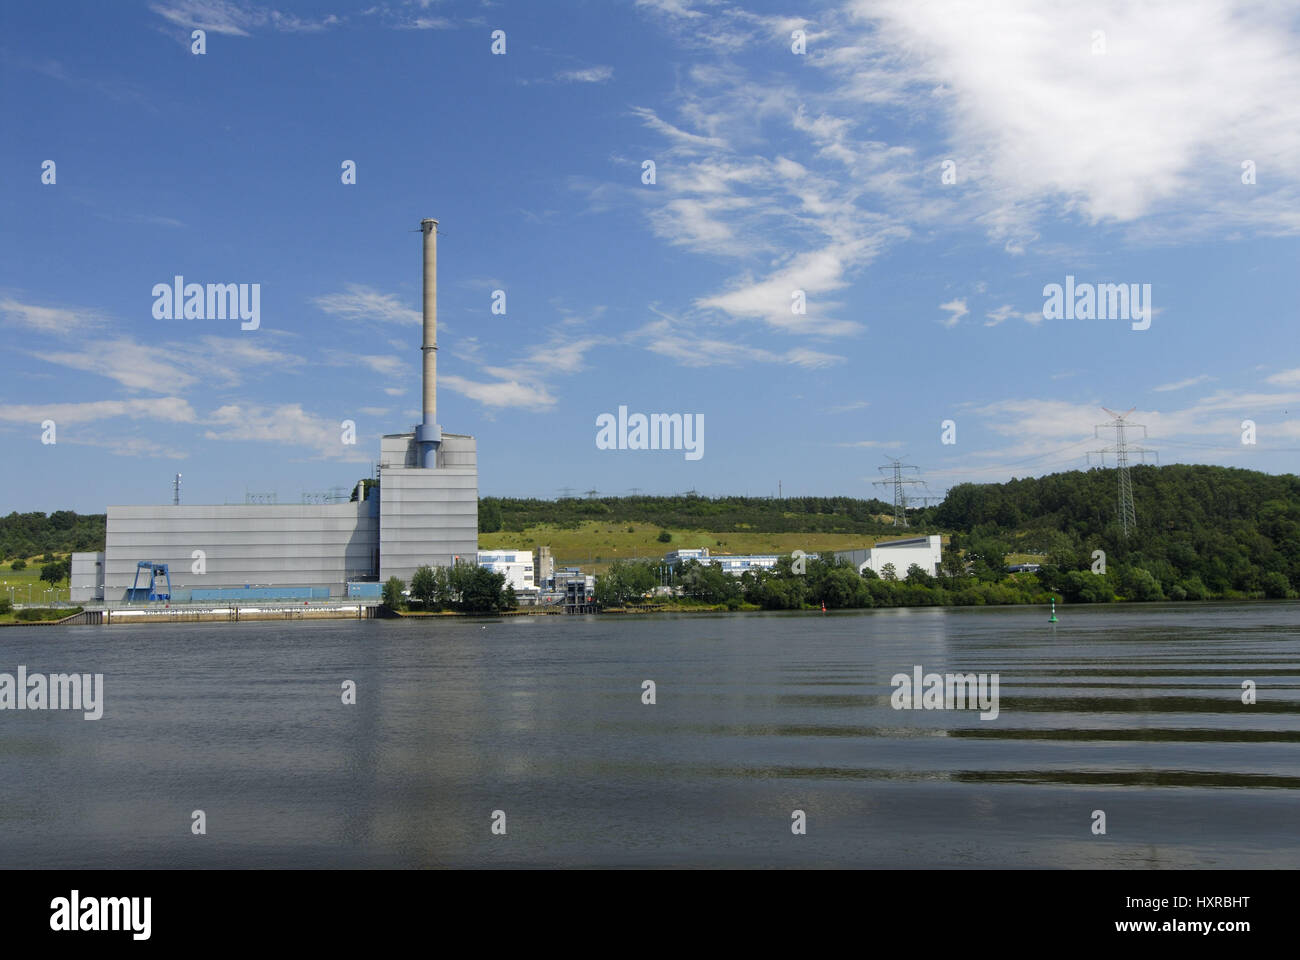 Atomic power station, AKWs, nuclear power plant, nuclear power station, KKW, KKWs, Kr?mmel, Schleswig - Holstein, - Stock Image